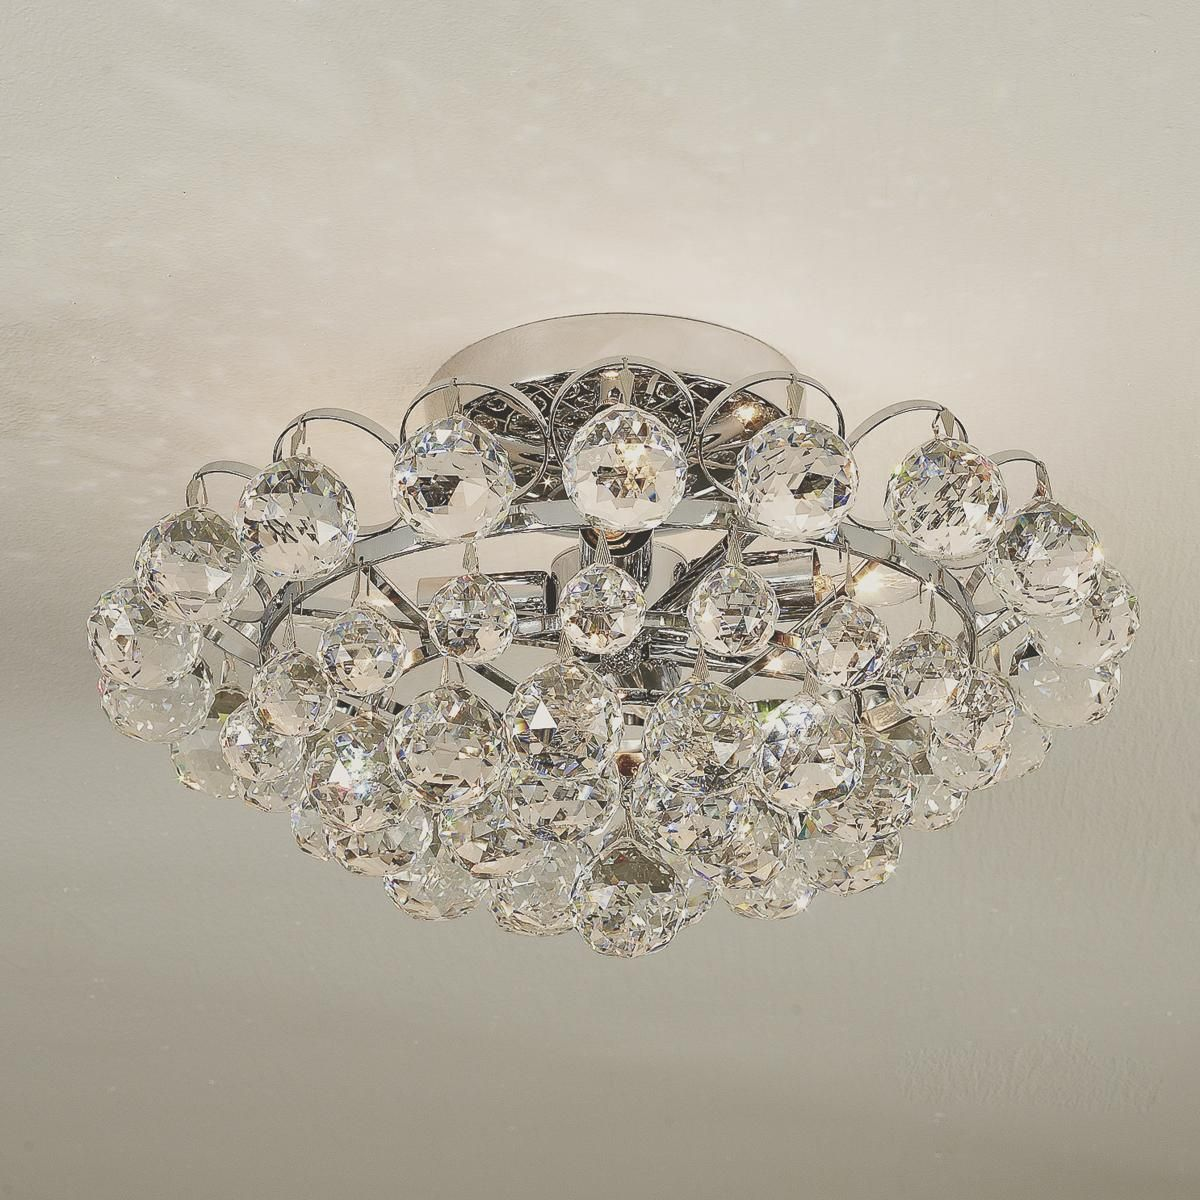 Glamorous Crystal Ceiling Light Glamour A Brilliant Arrangement Of Faceted Crystals Hanging